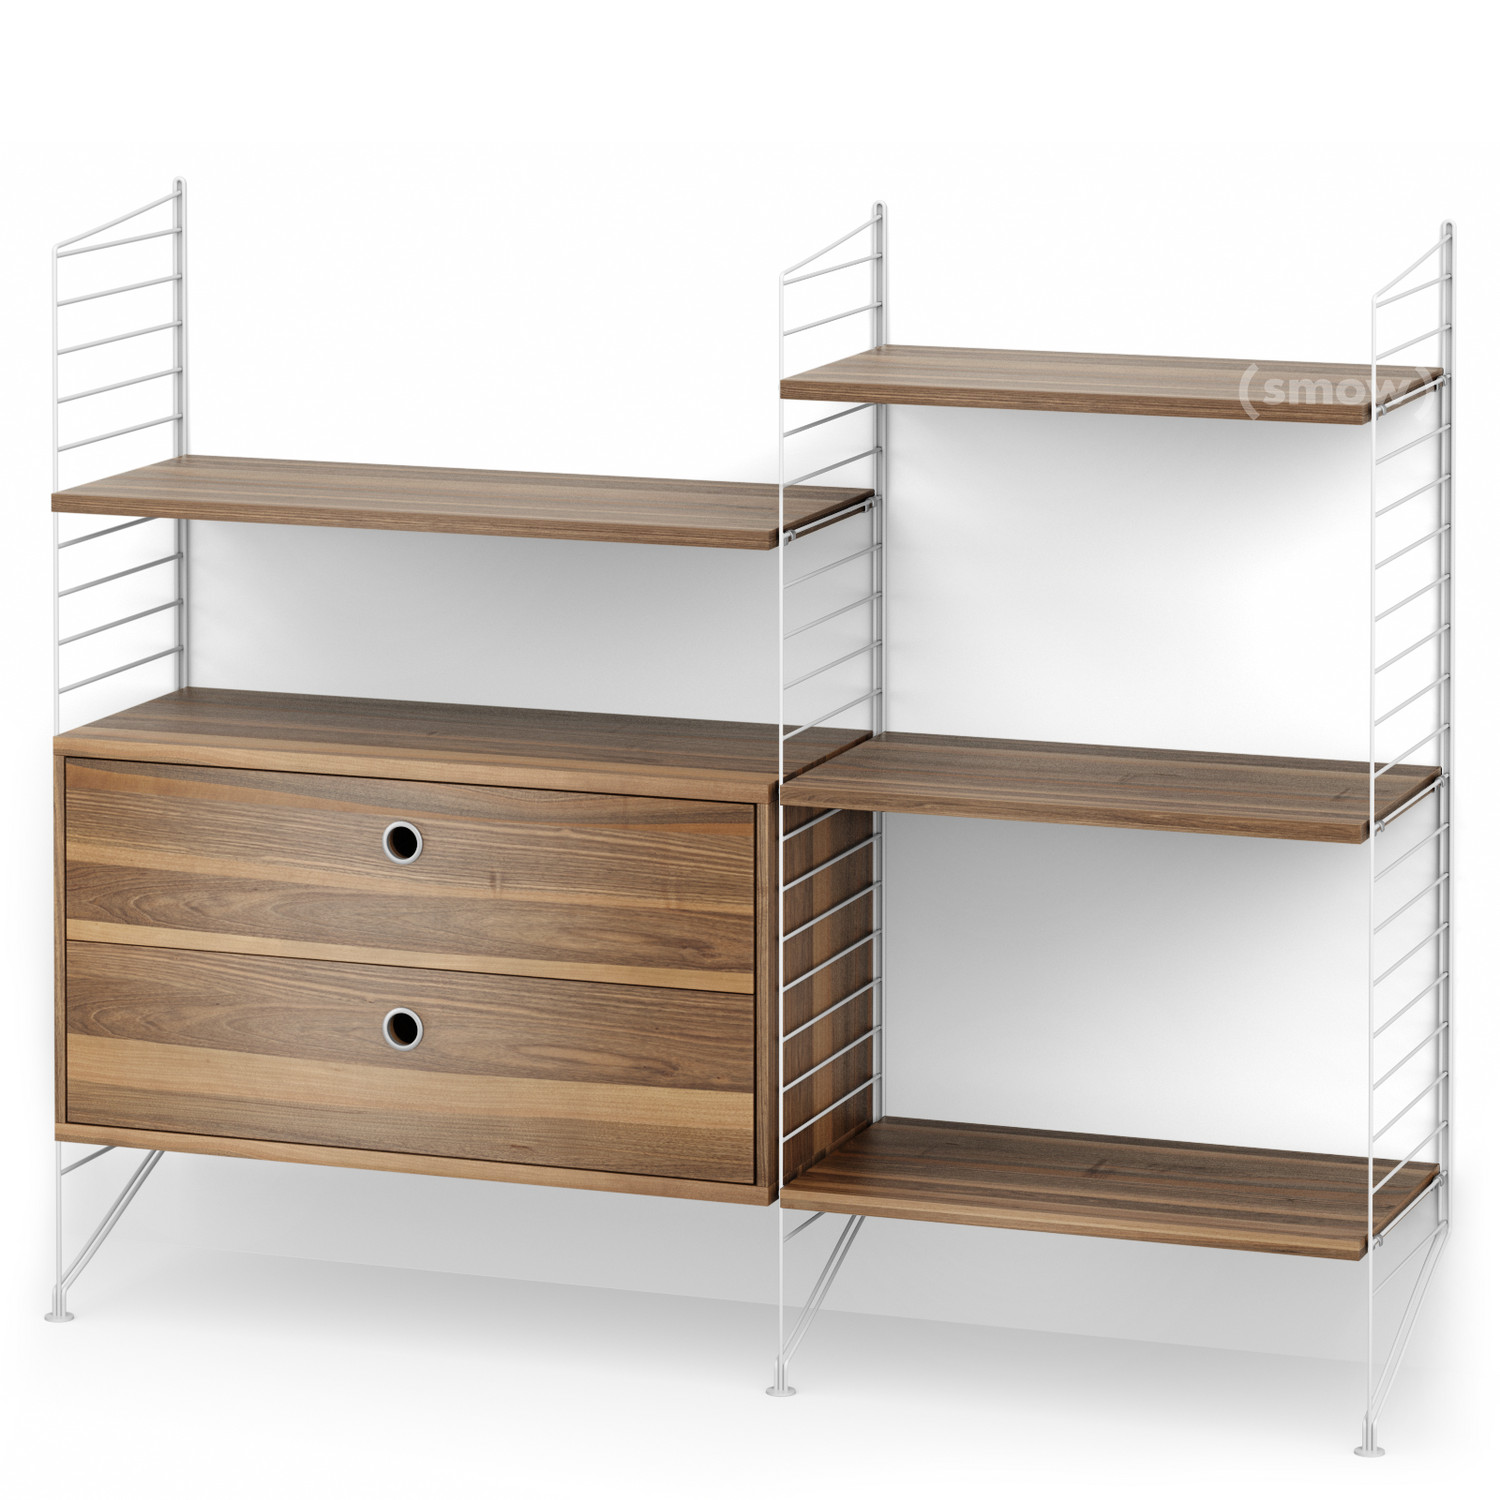 String System Floor Shelf with Drawers White Walnut veneer by